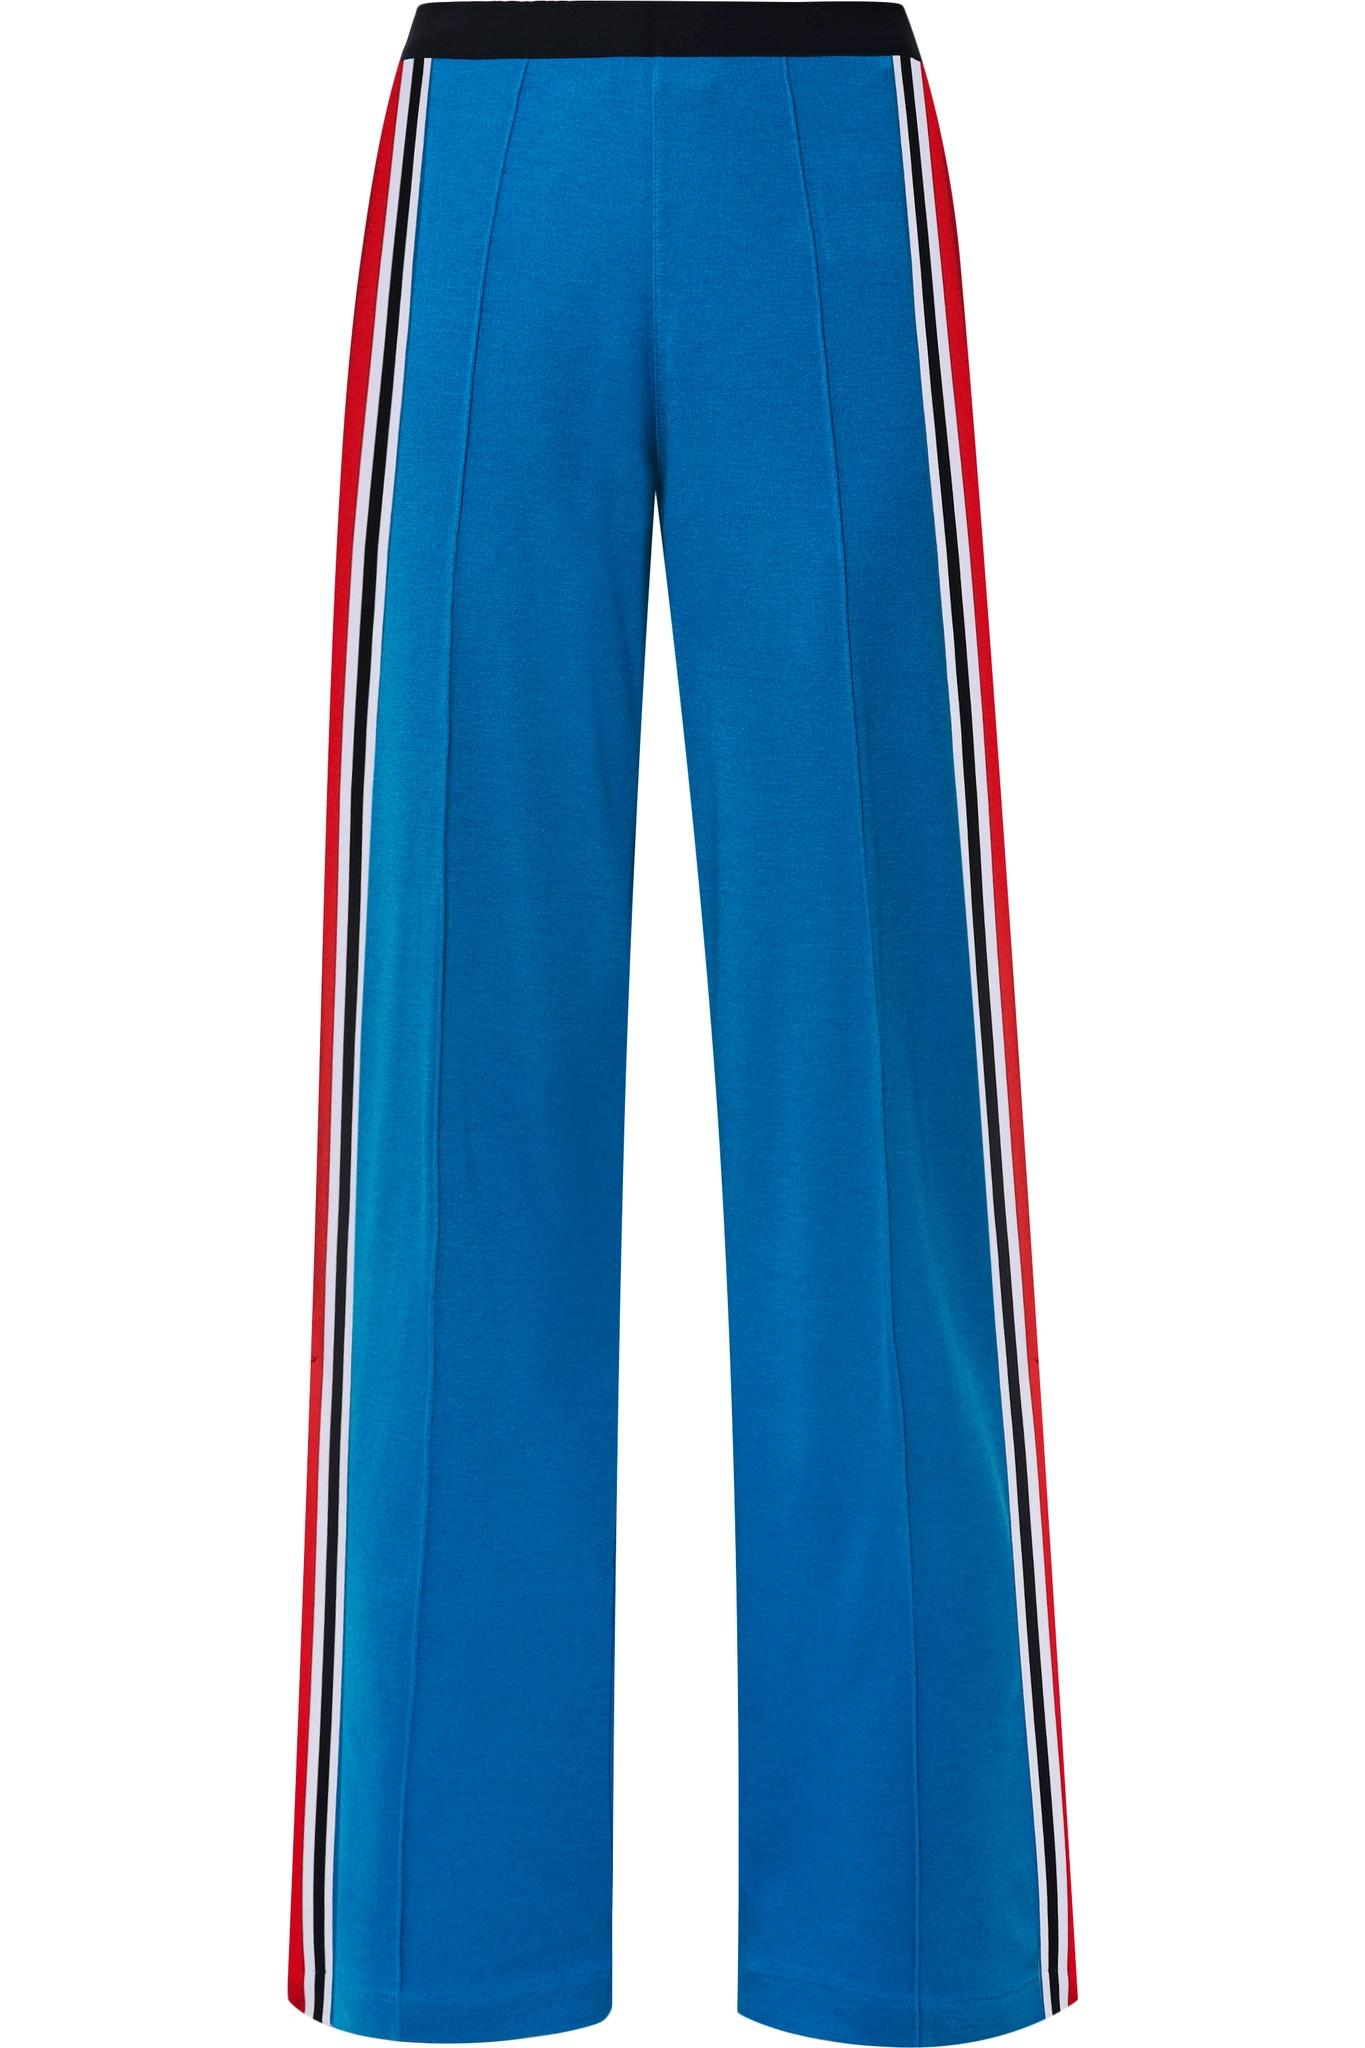 27c8d6ee81228a Lyst - Tory Sport Striped Stretch-jersey Track Pants in Blue - Save 61%